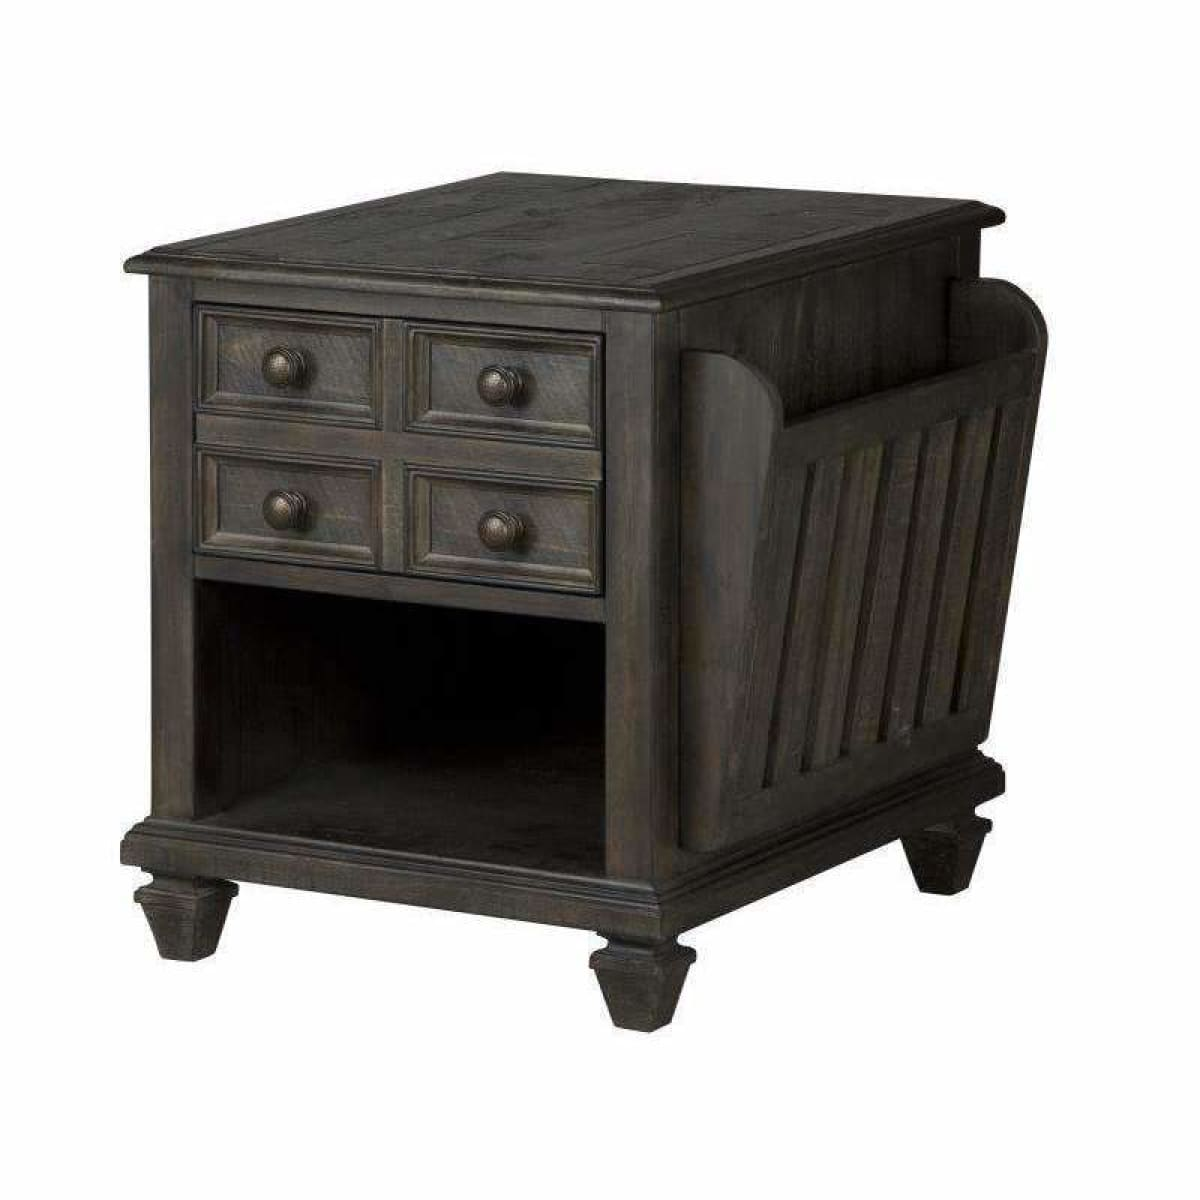 Burkhardt Magazine End Table - END TABLE/SIDE TABLE